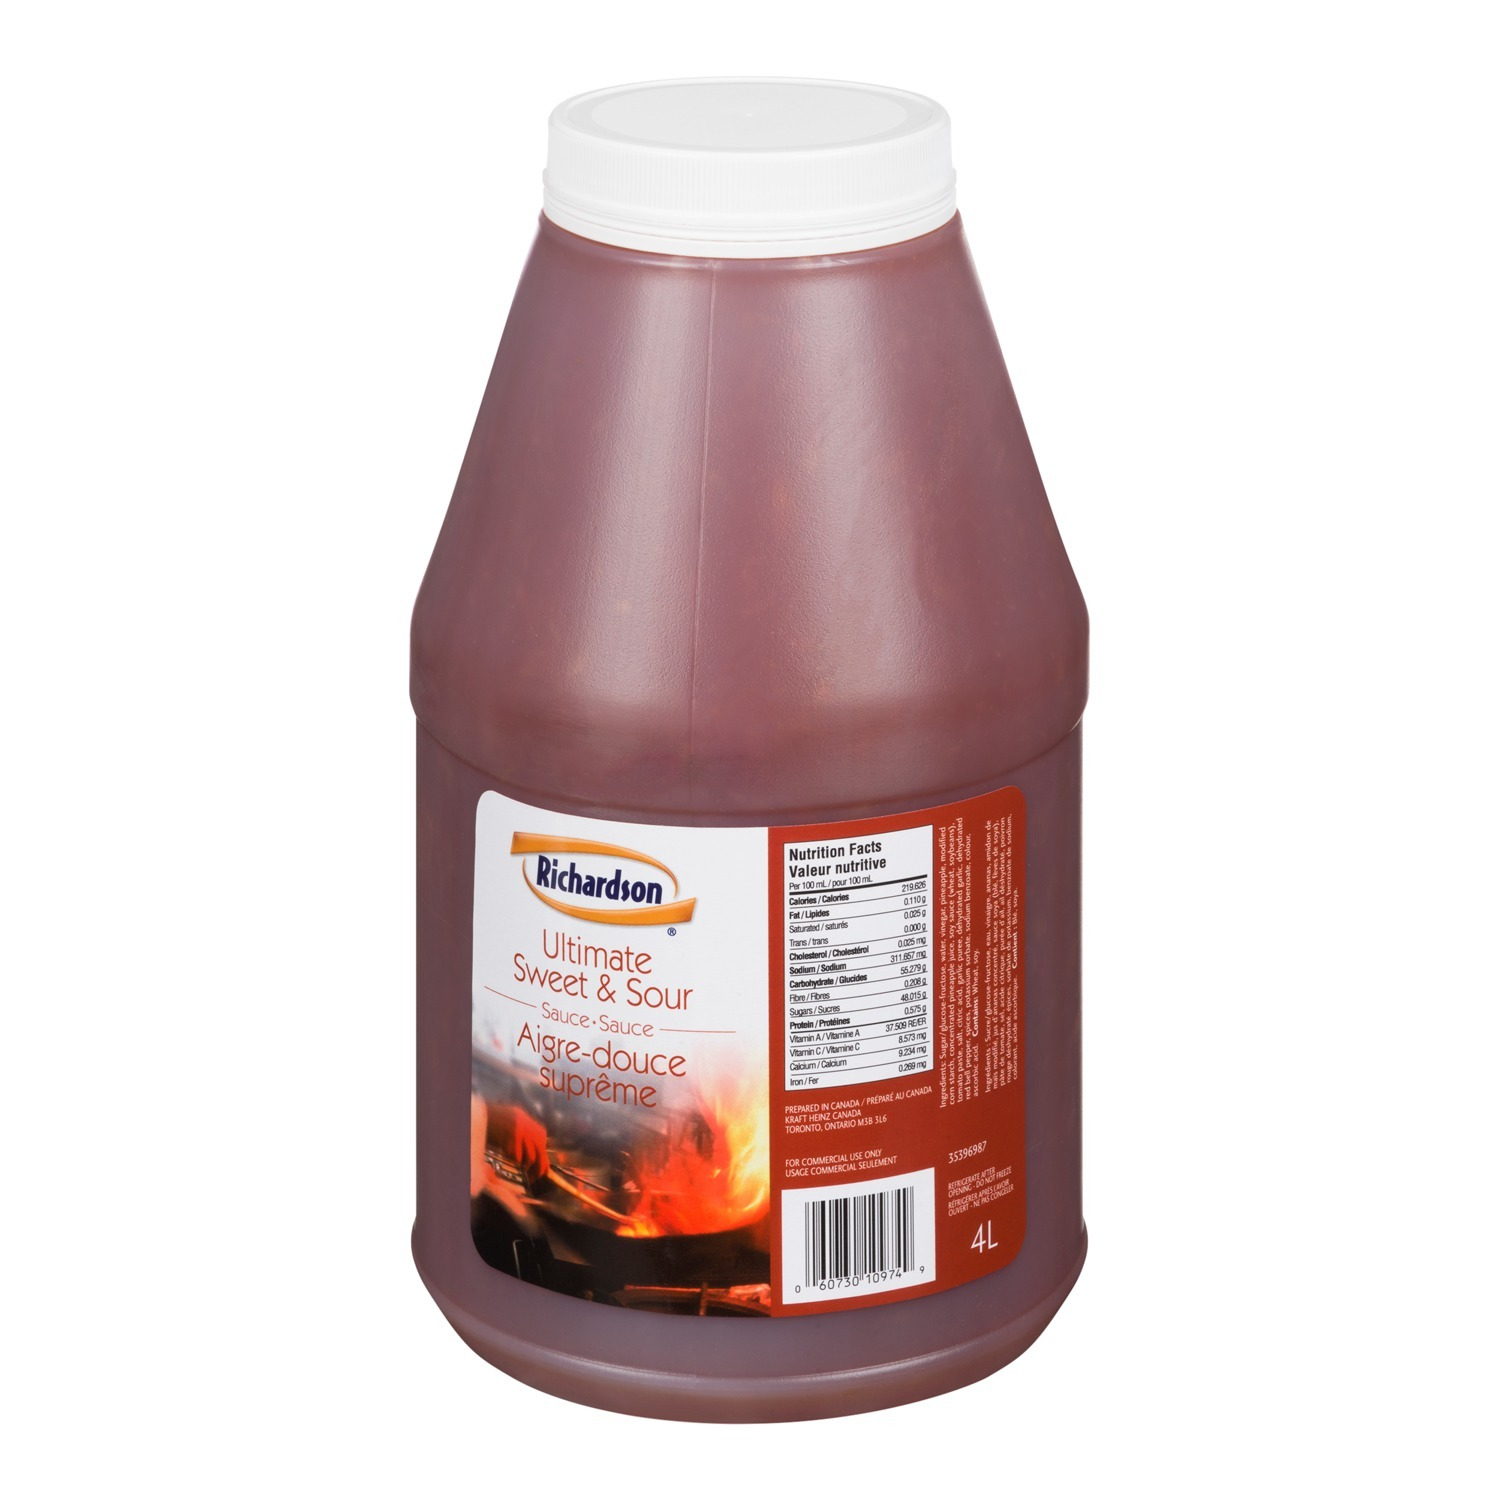 RICHARDSON Ultimate Sweet & Sour Sauce 4L 2